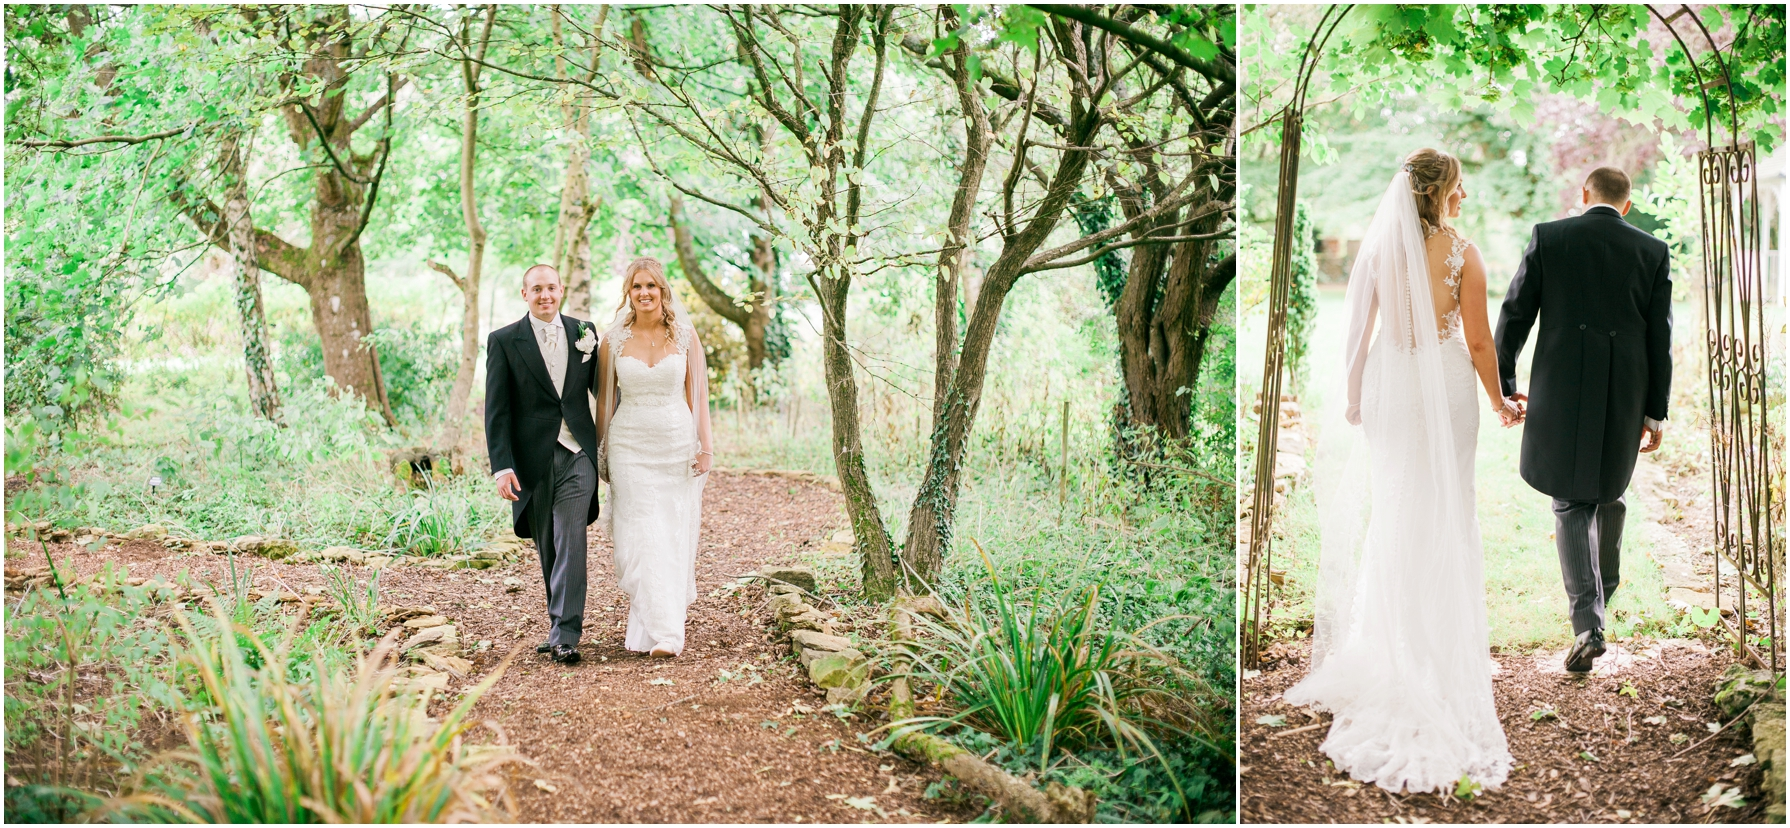 bride and groom walking through a woodland area